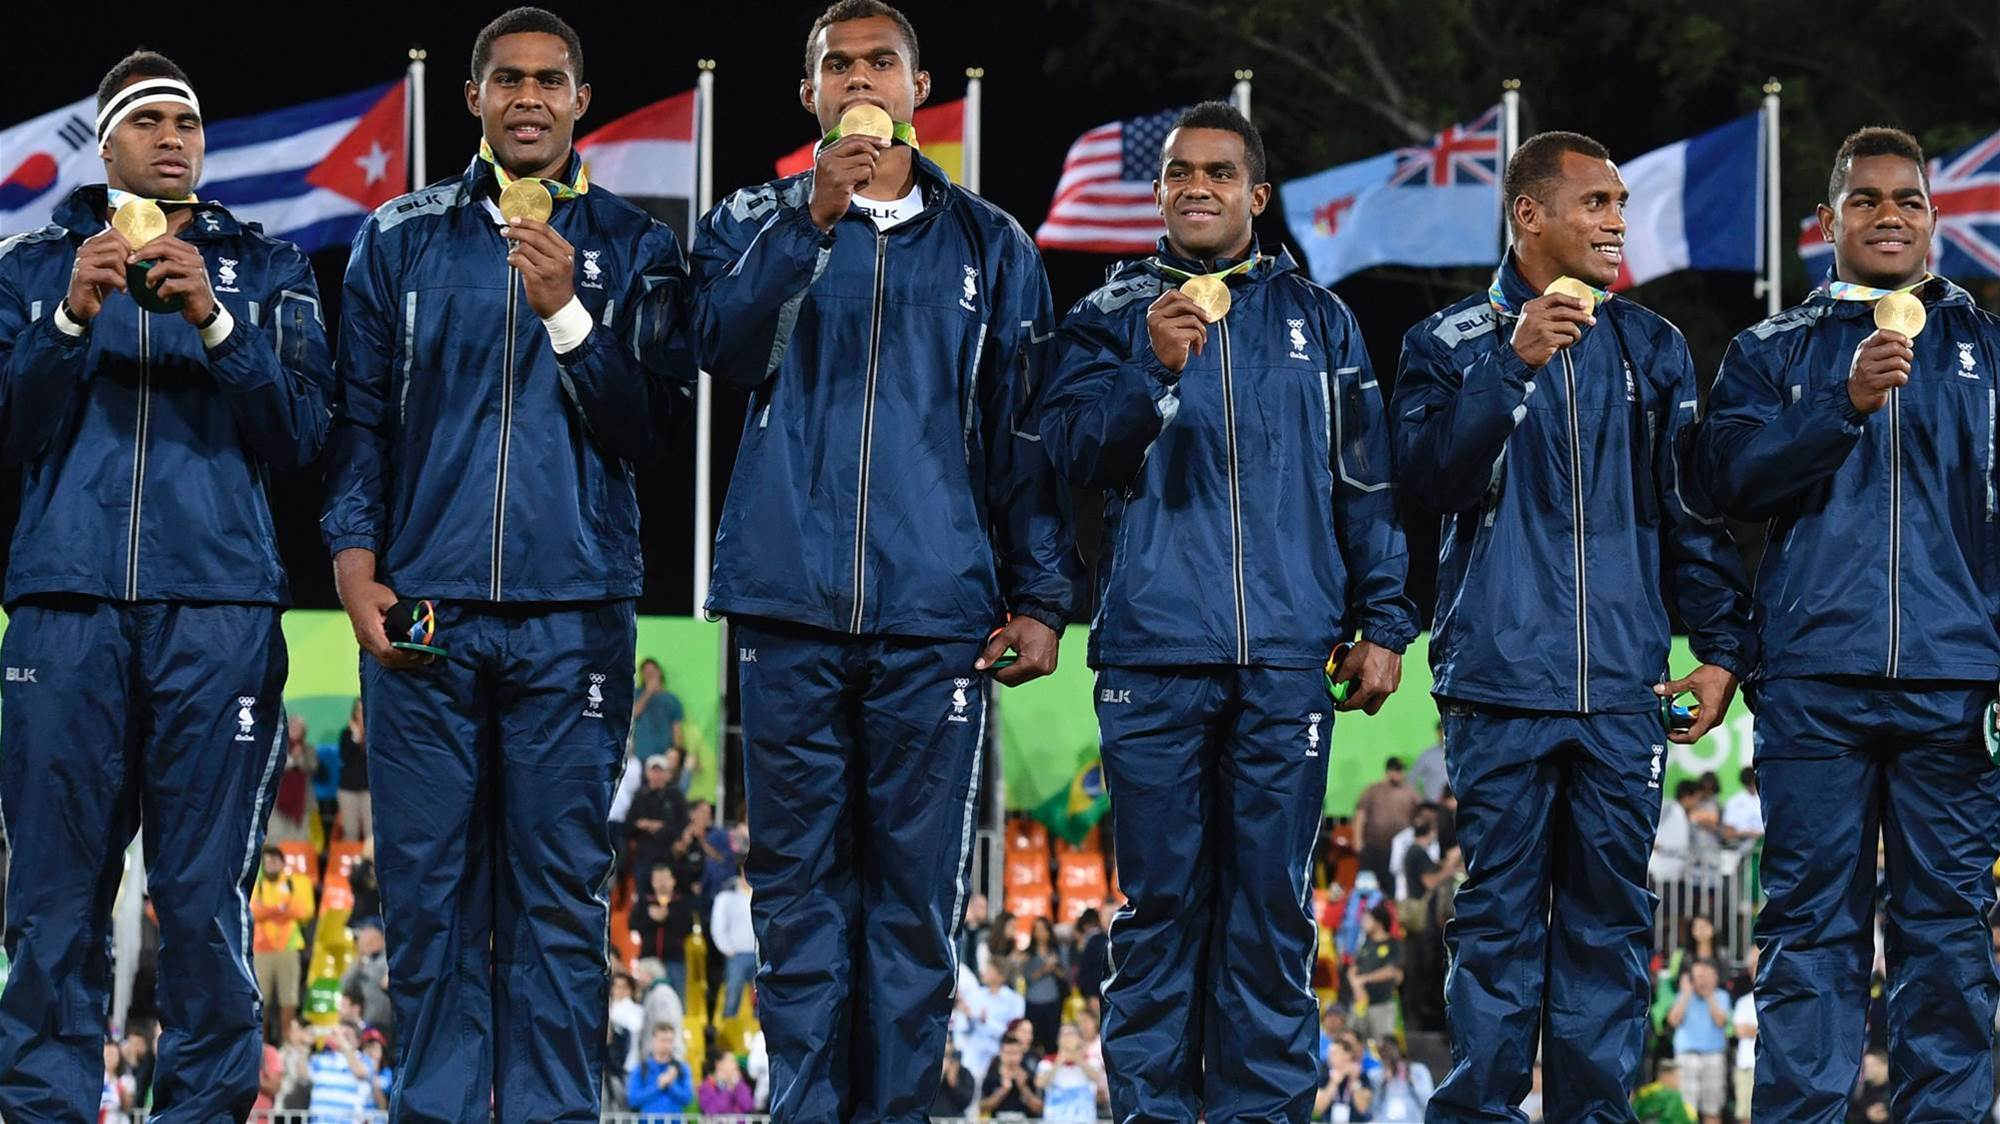 Fiji introduce $7 note in honour of sevens gold medal